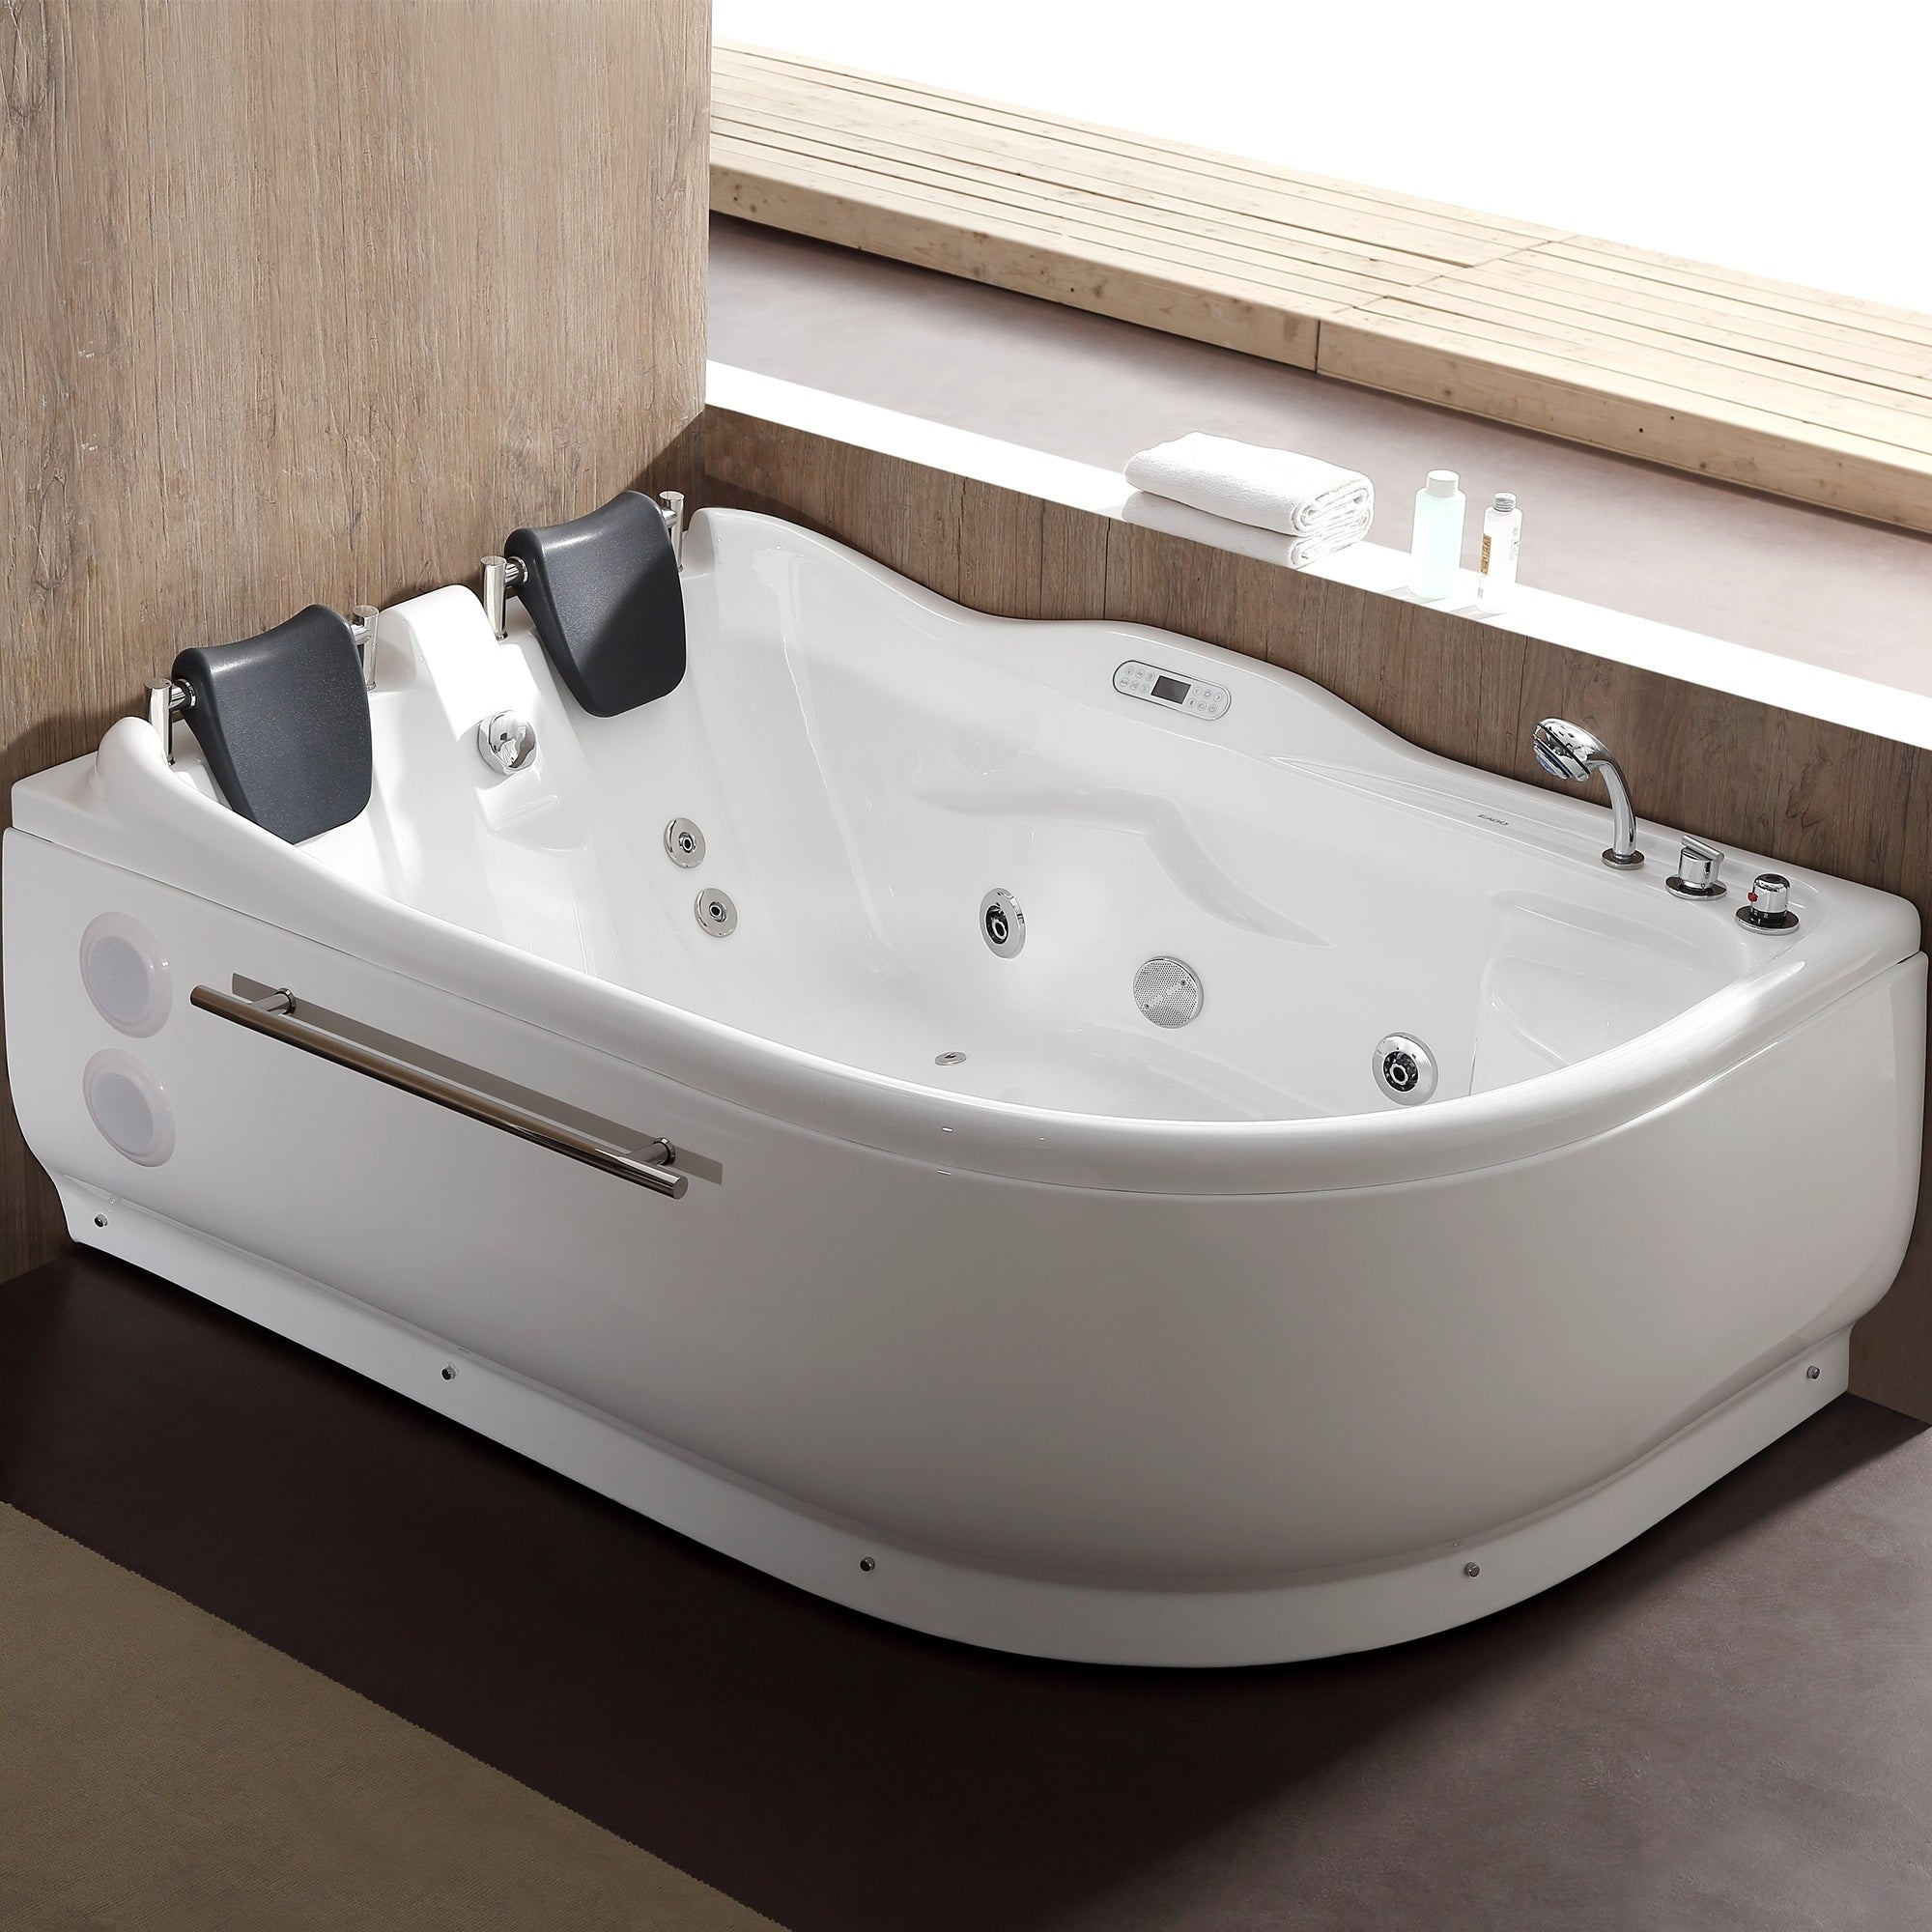 Gentil Shop EAGO AM124ETL R 6 Ft Right Corner Acrylic White Whirlpool Bathtub For  Two   Free Shipping Today   Overstock.com   19399034